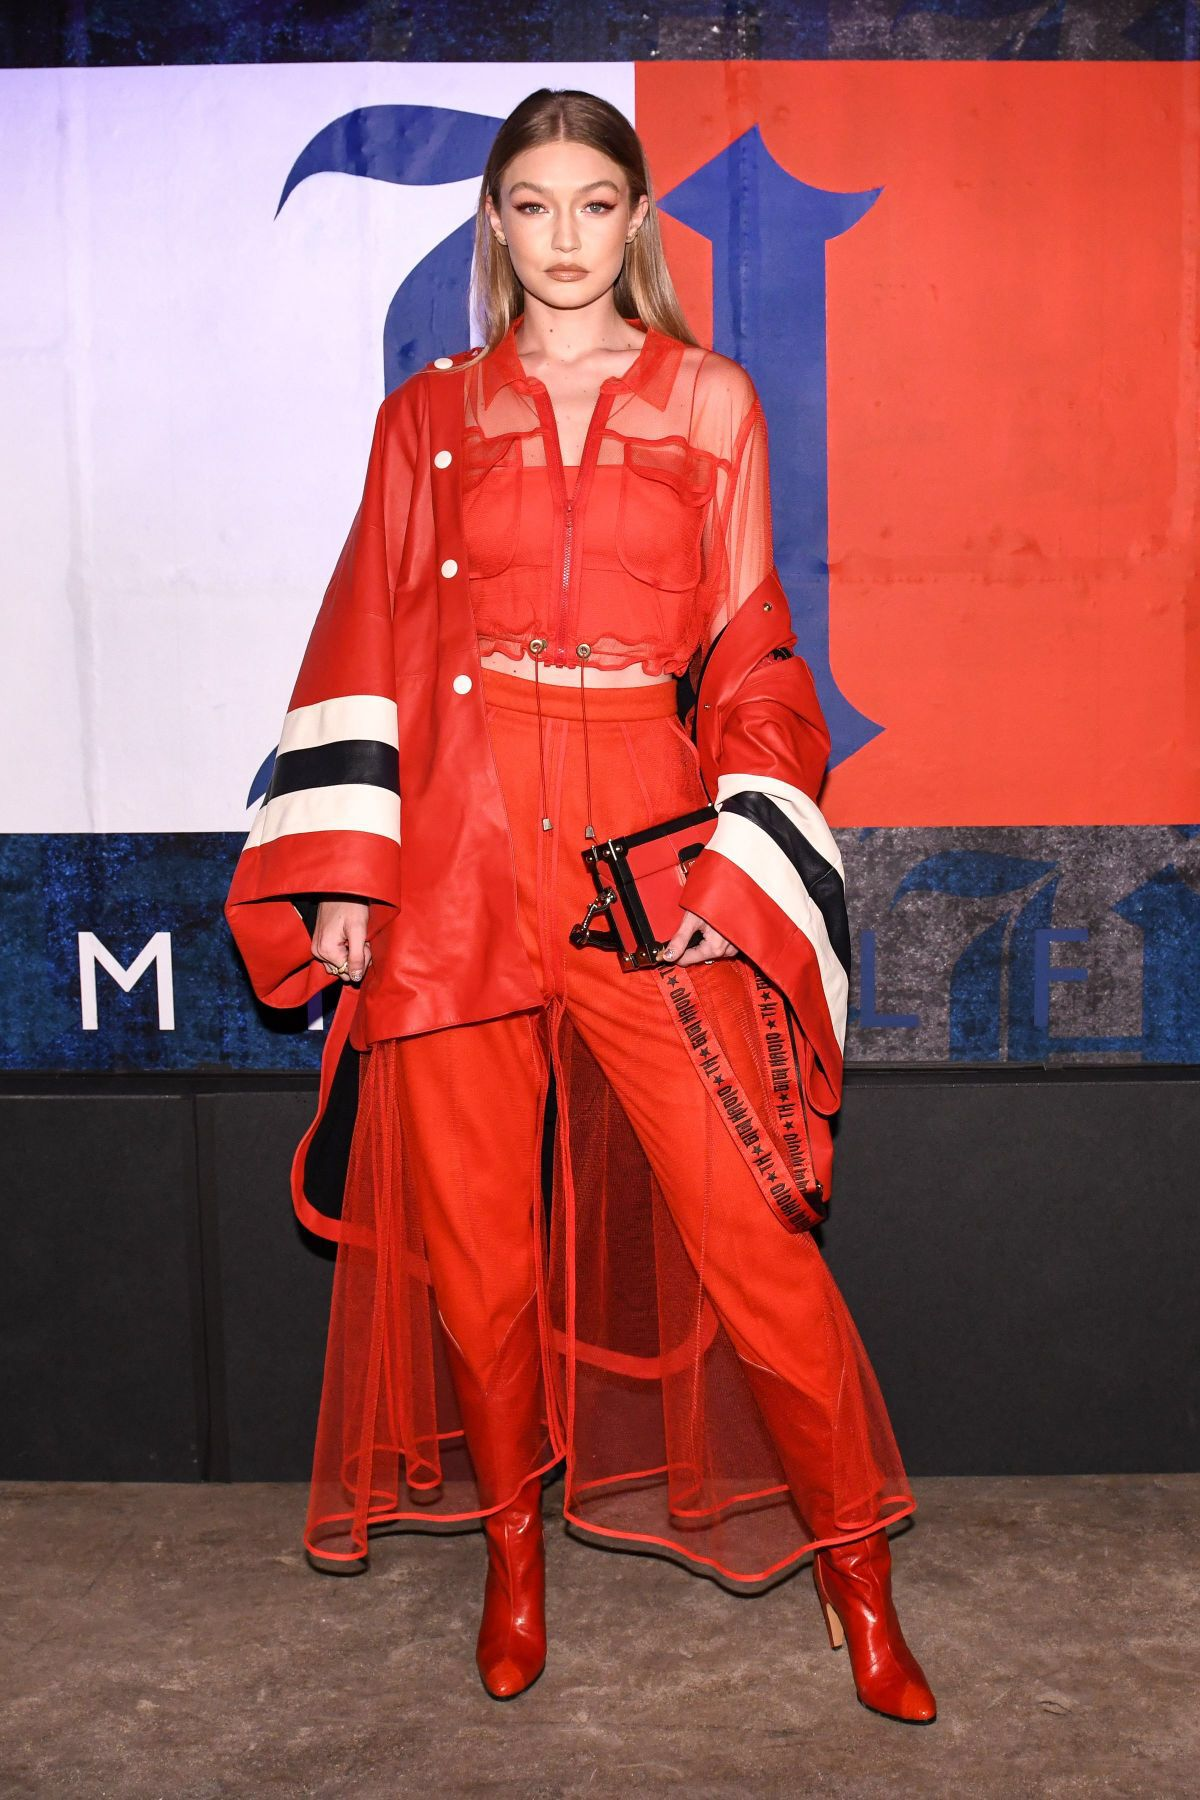 d3eabbf2975 Gigi Hadid at Tommy Hilfiger x Lewis Hamilton Launch Party in New York  09 10 2018.  gigihadid  tommyhilfiger  summerstyle  celebrity  fashion   clothing ...